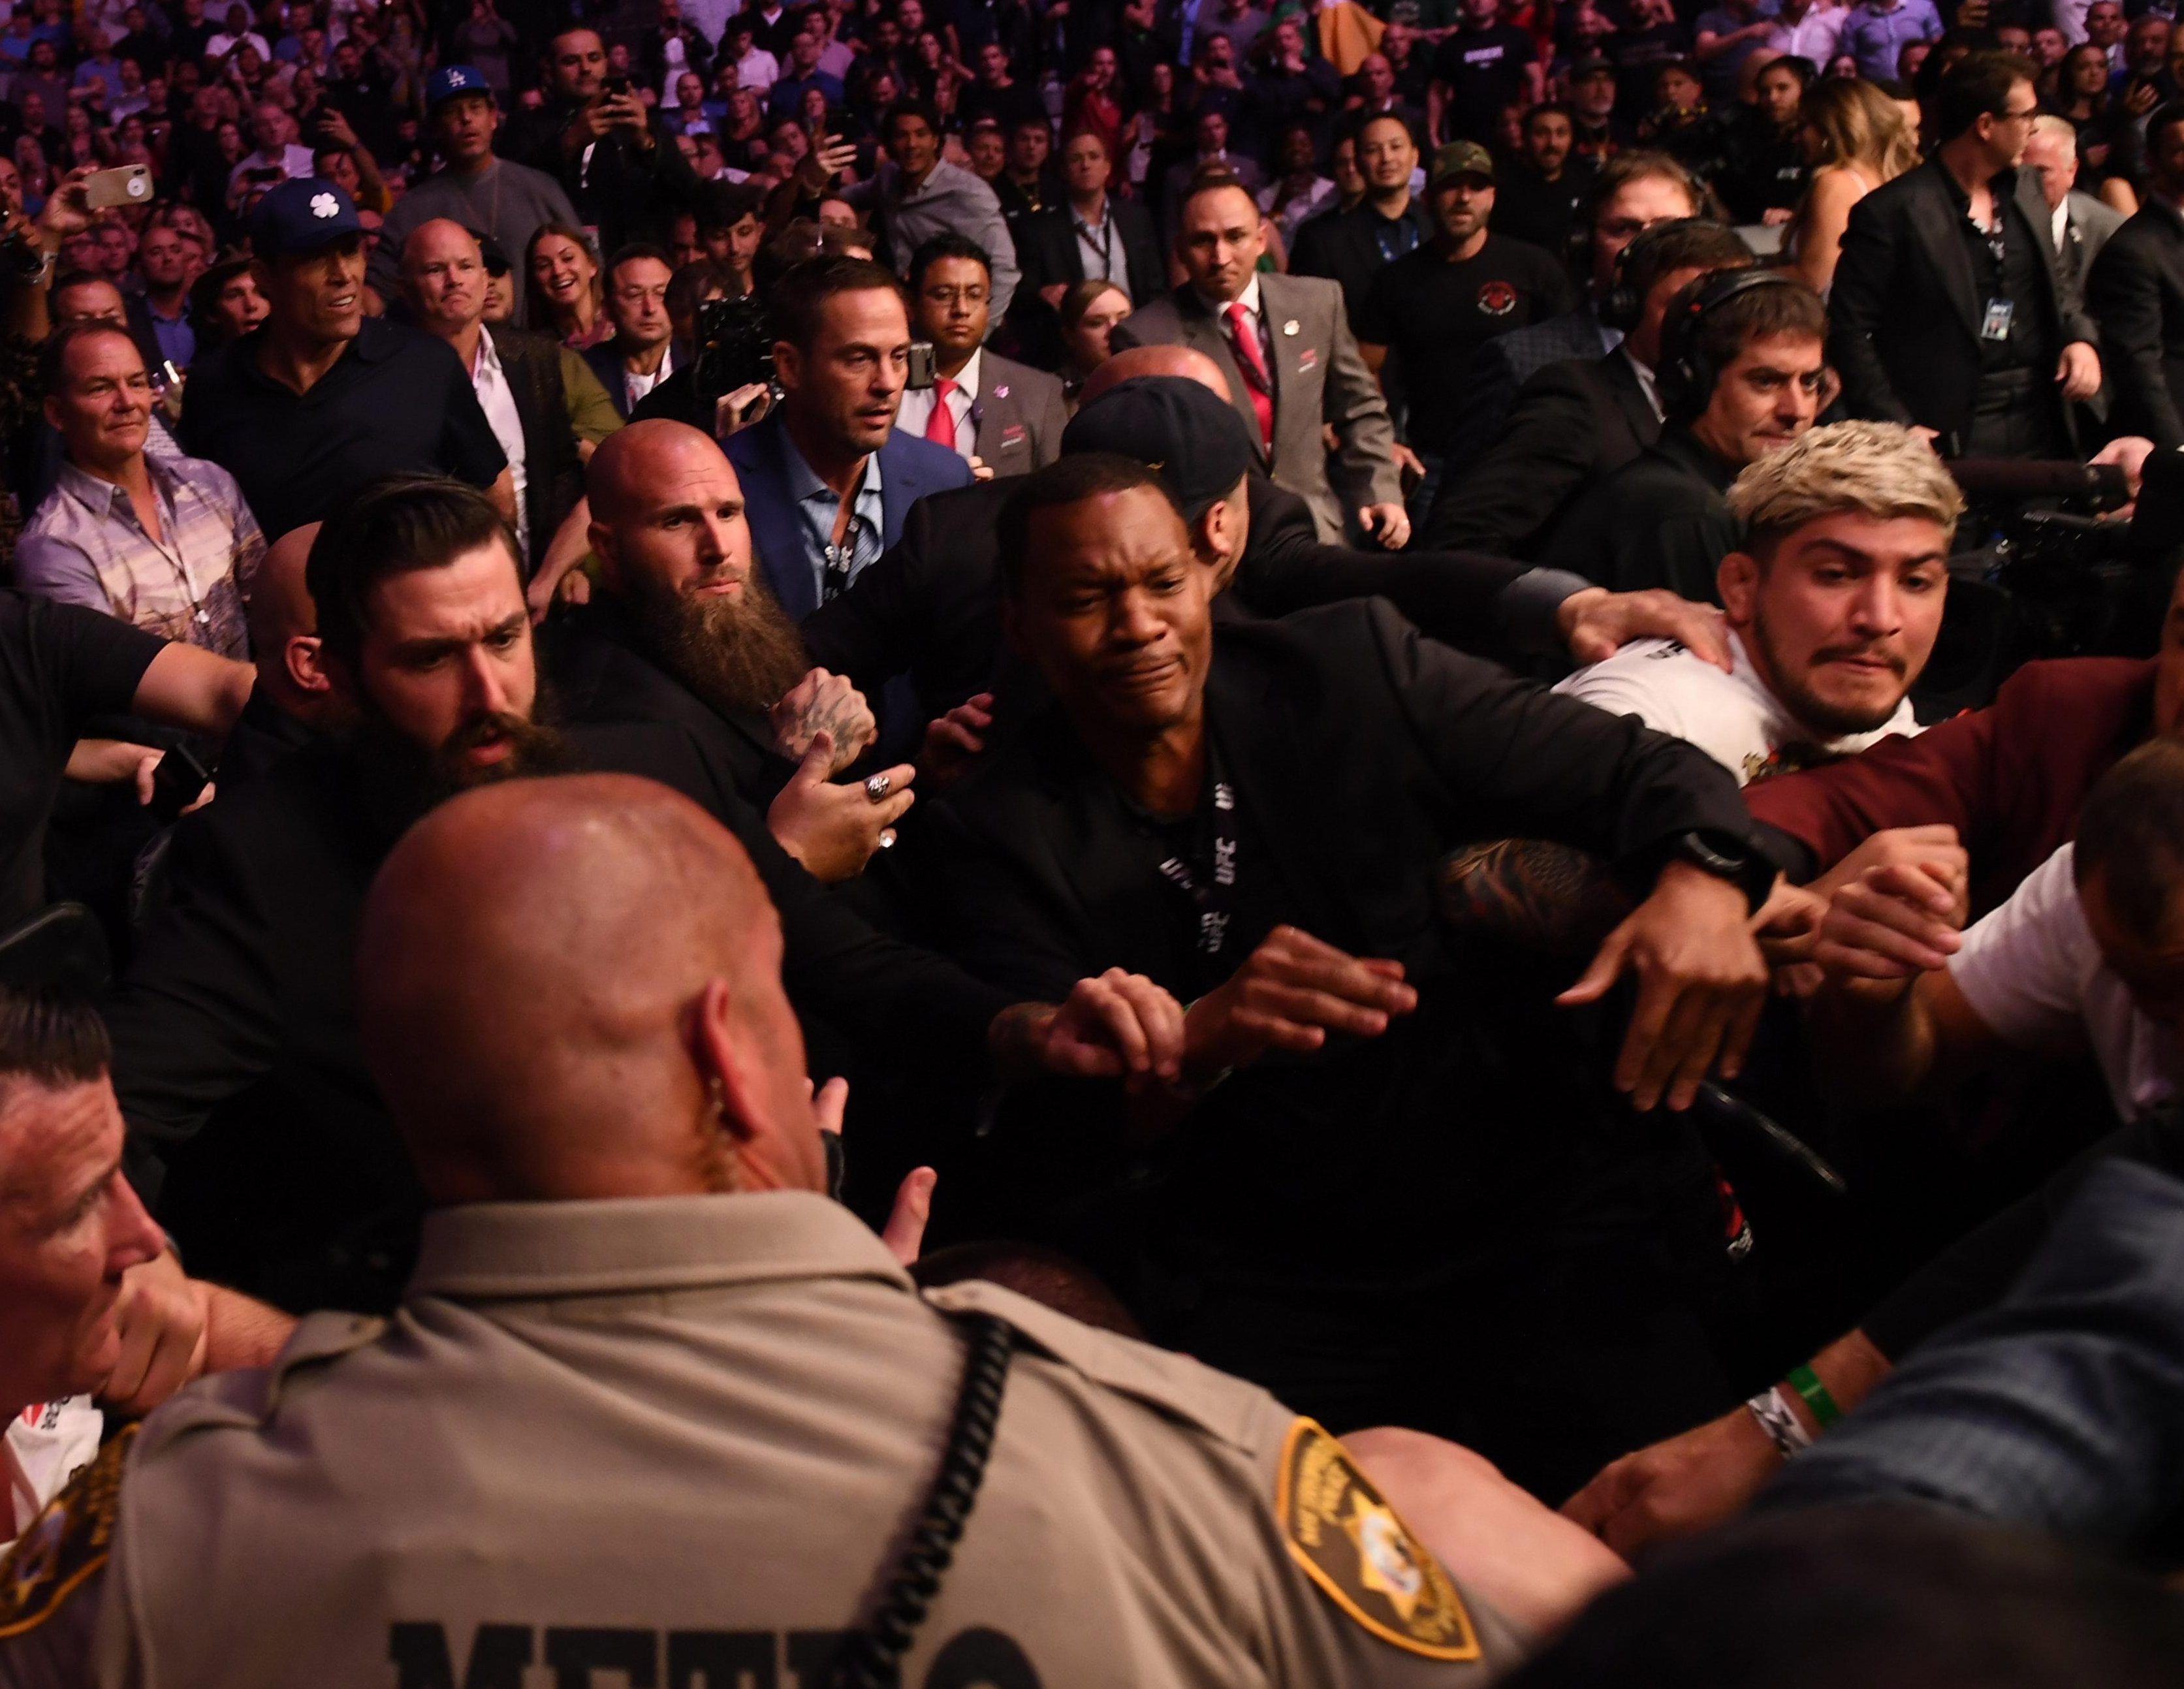 Dillon Danis is involved in a melee after UFC main event